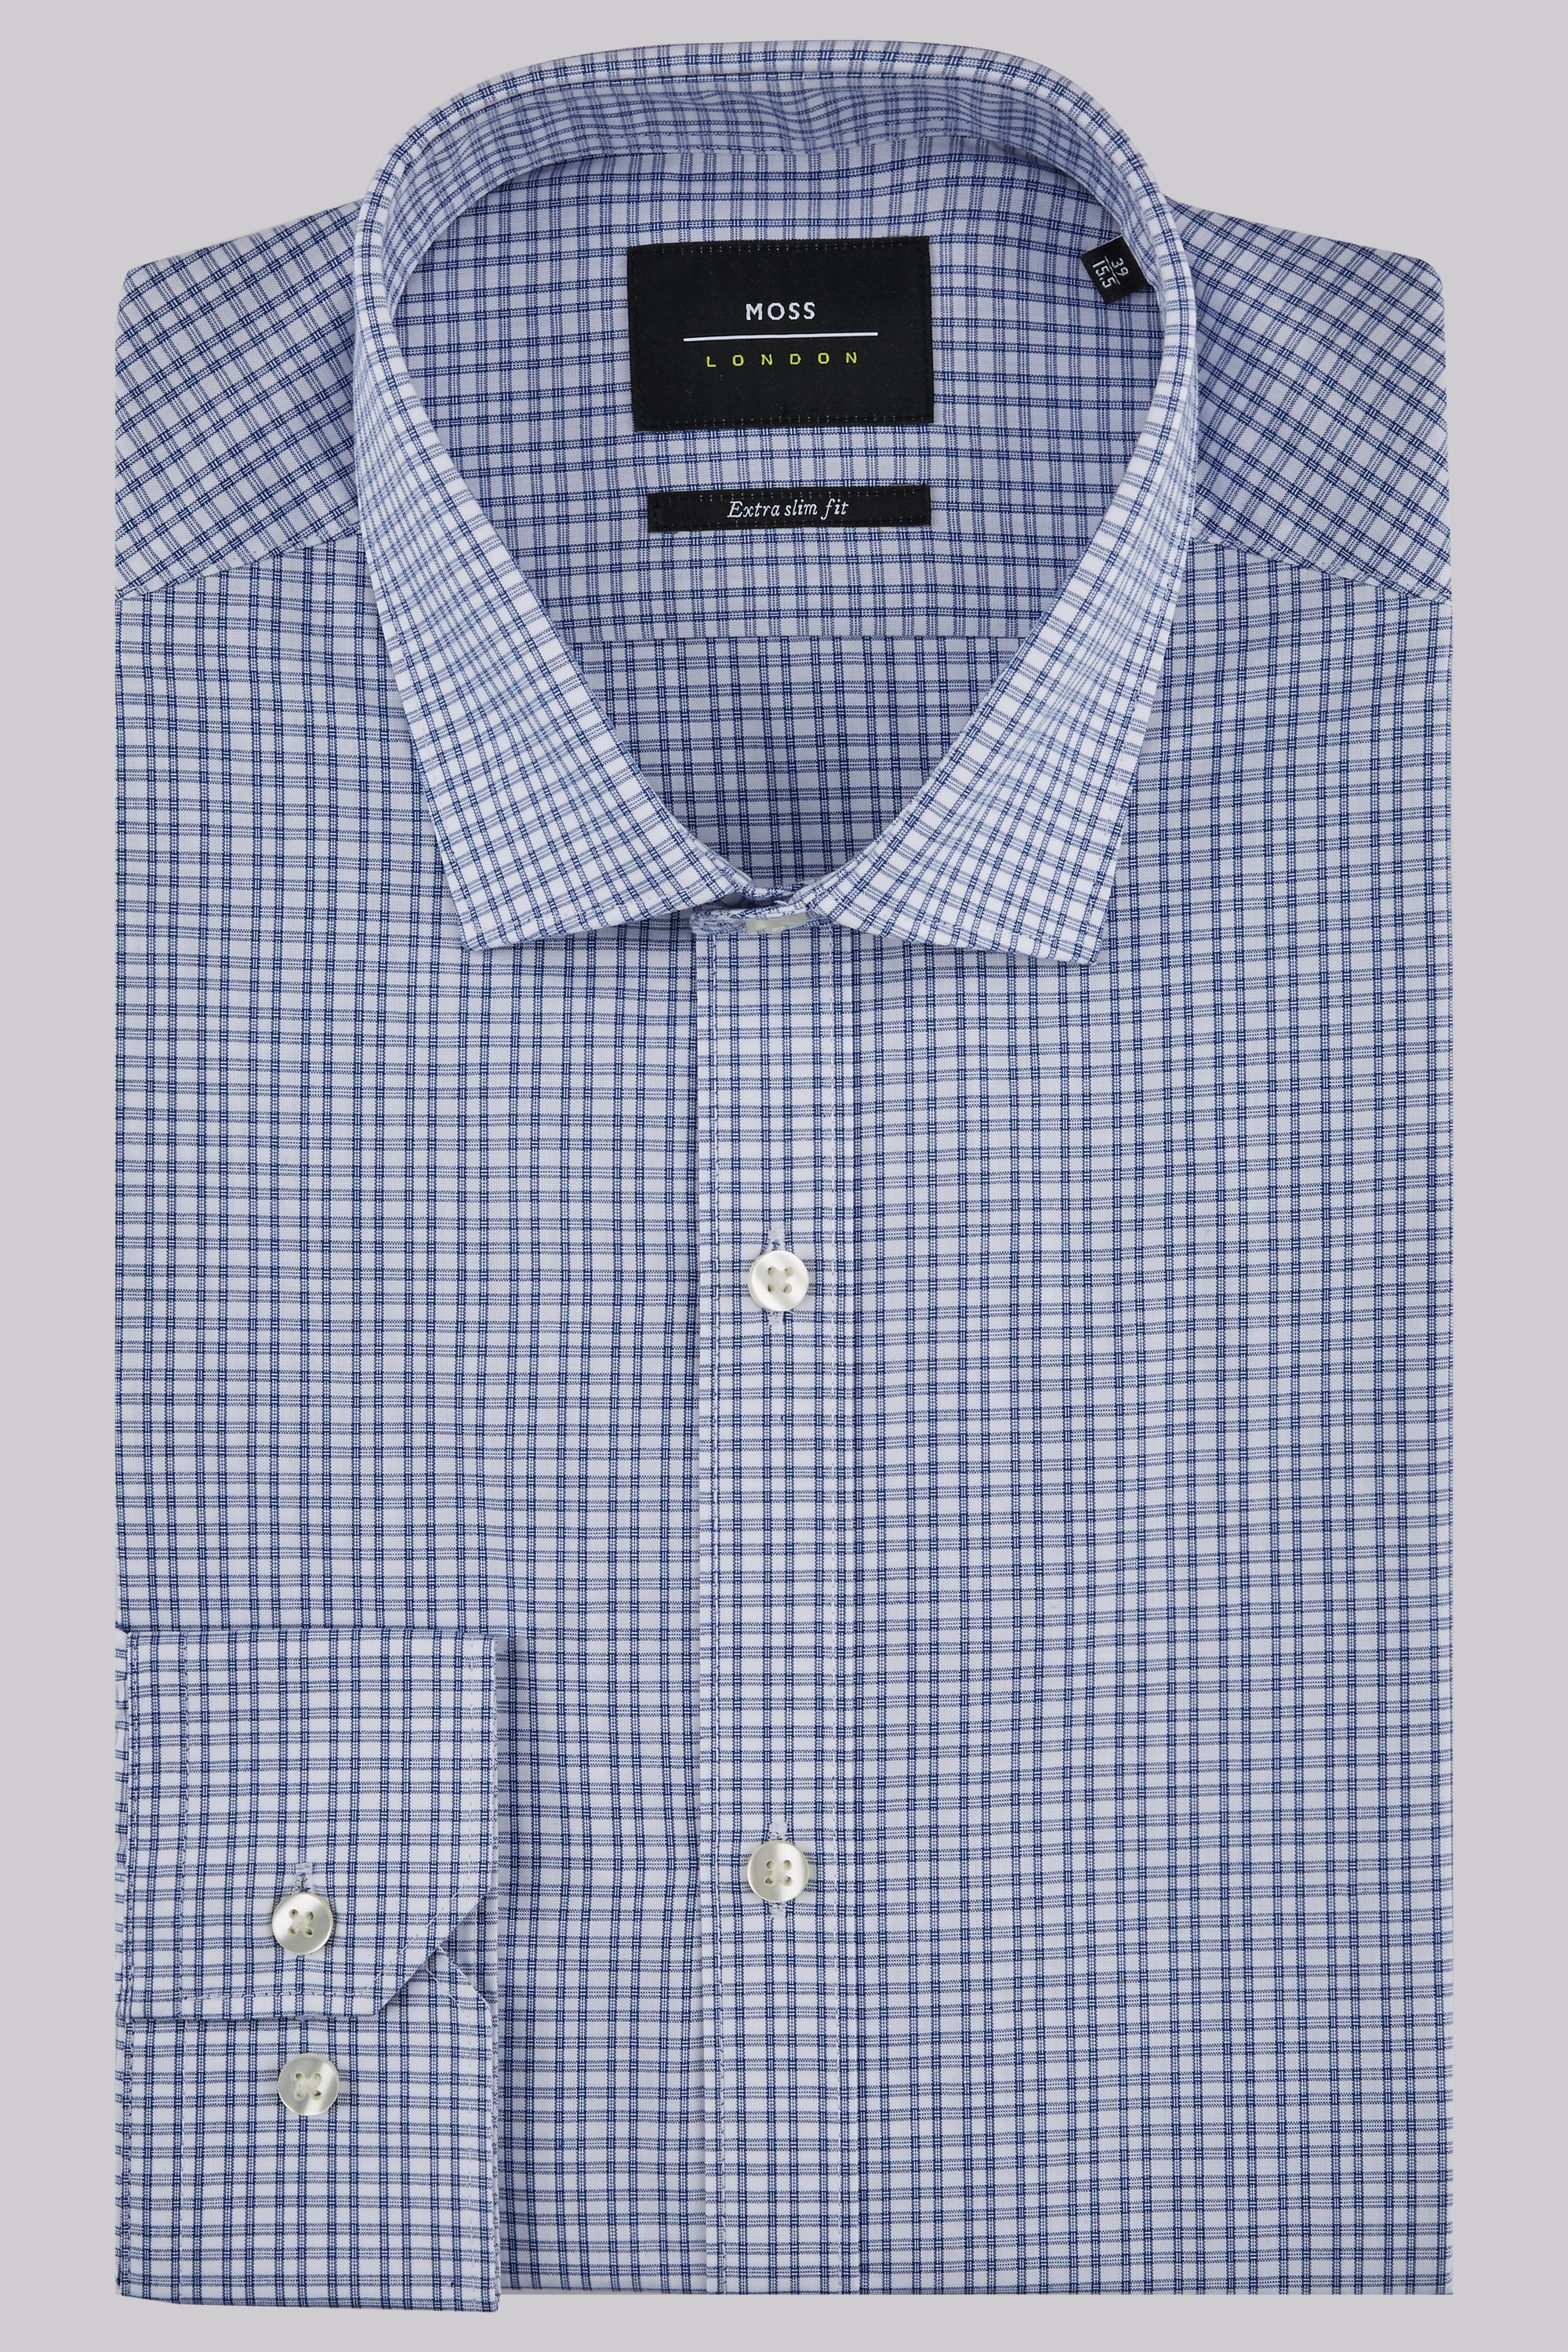 Moss Bros Moss London Extra Slim Fit Blue Single Cuff Check Shirt